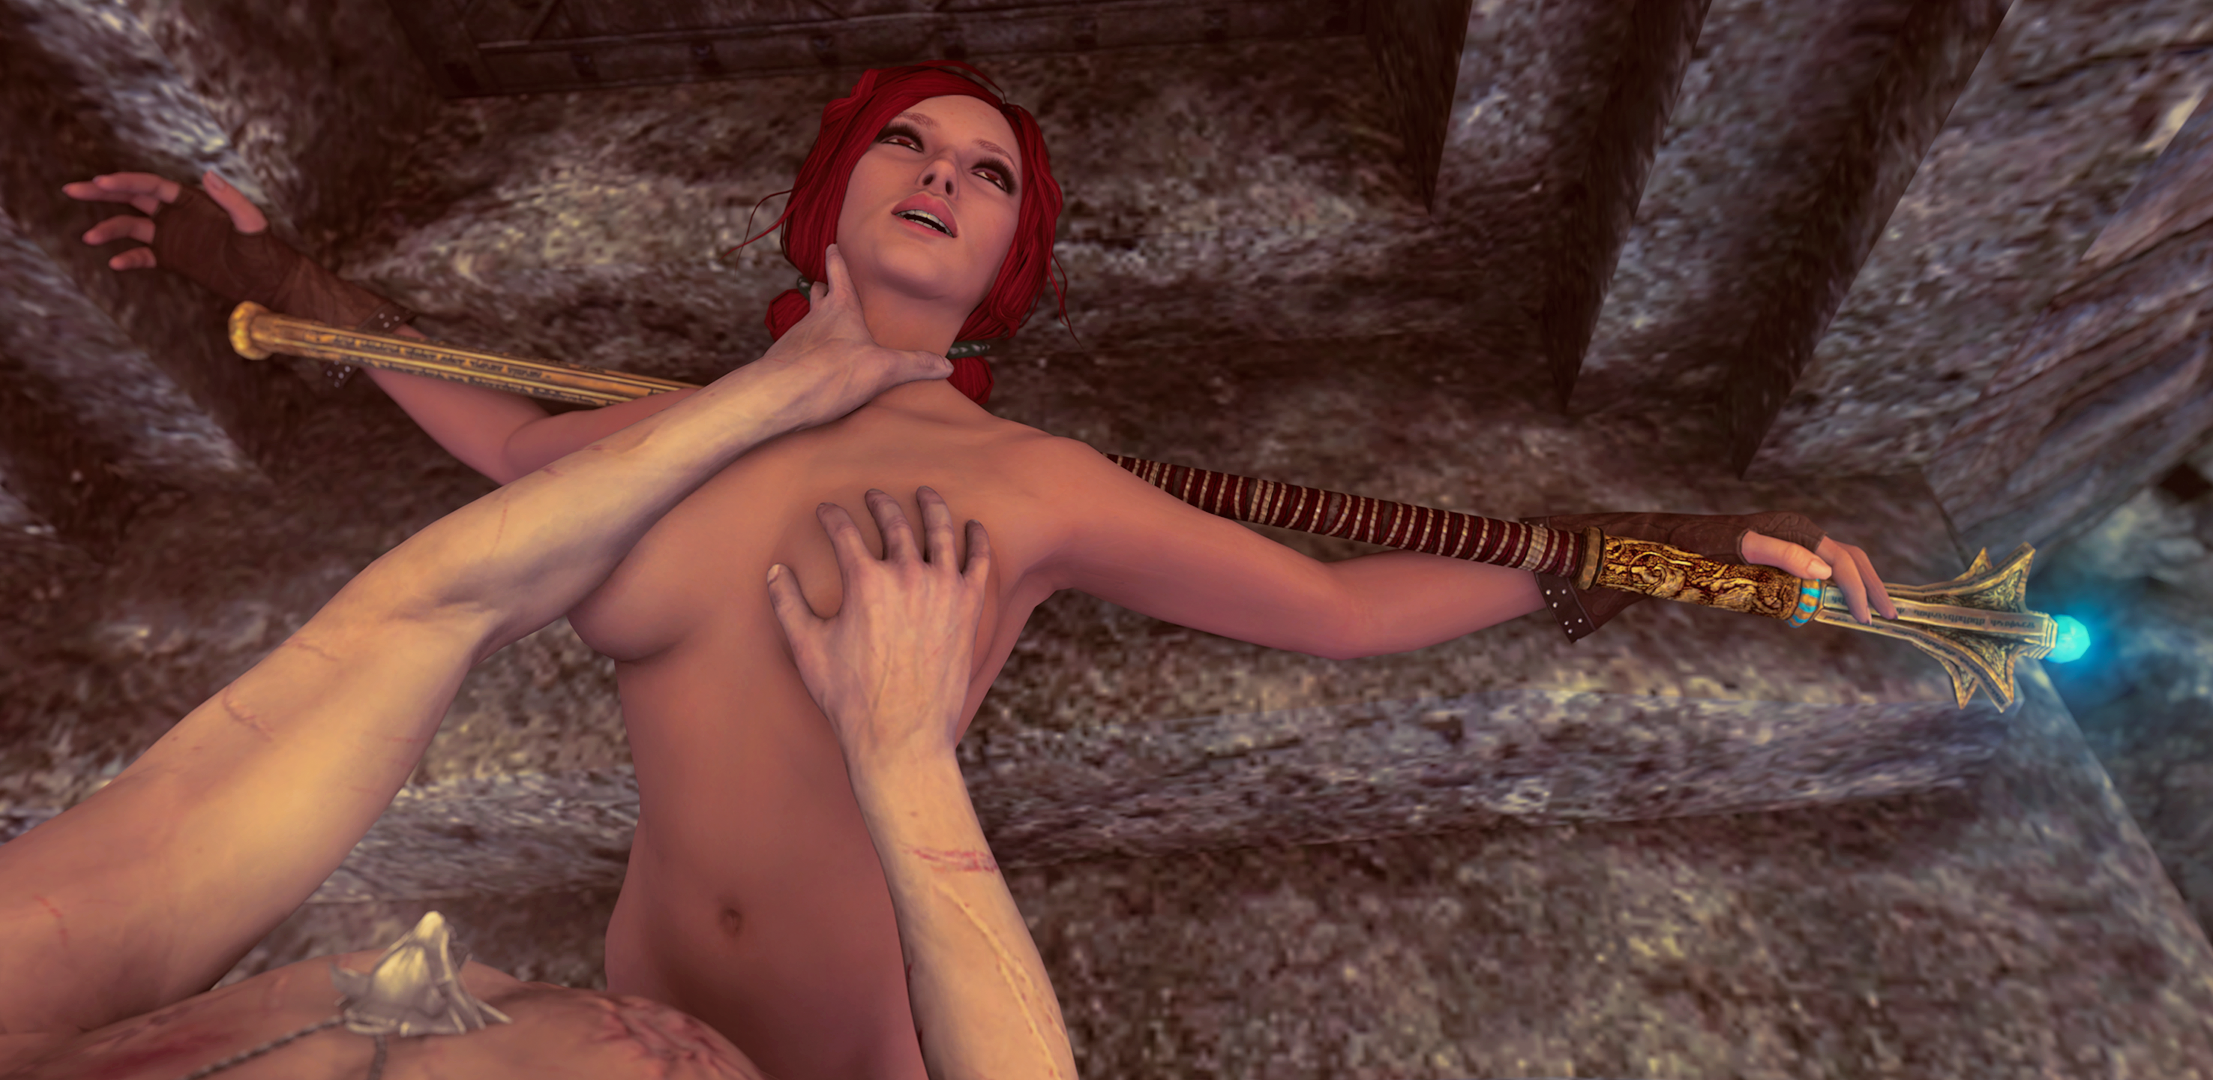 Witcher nude pics sex videos